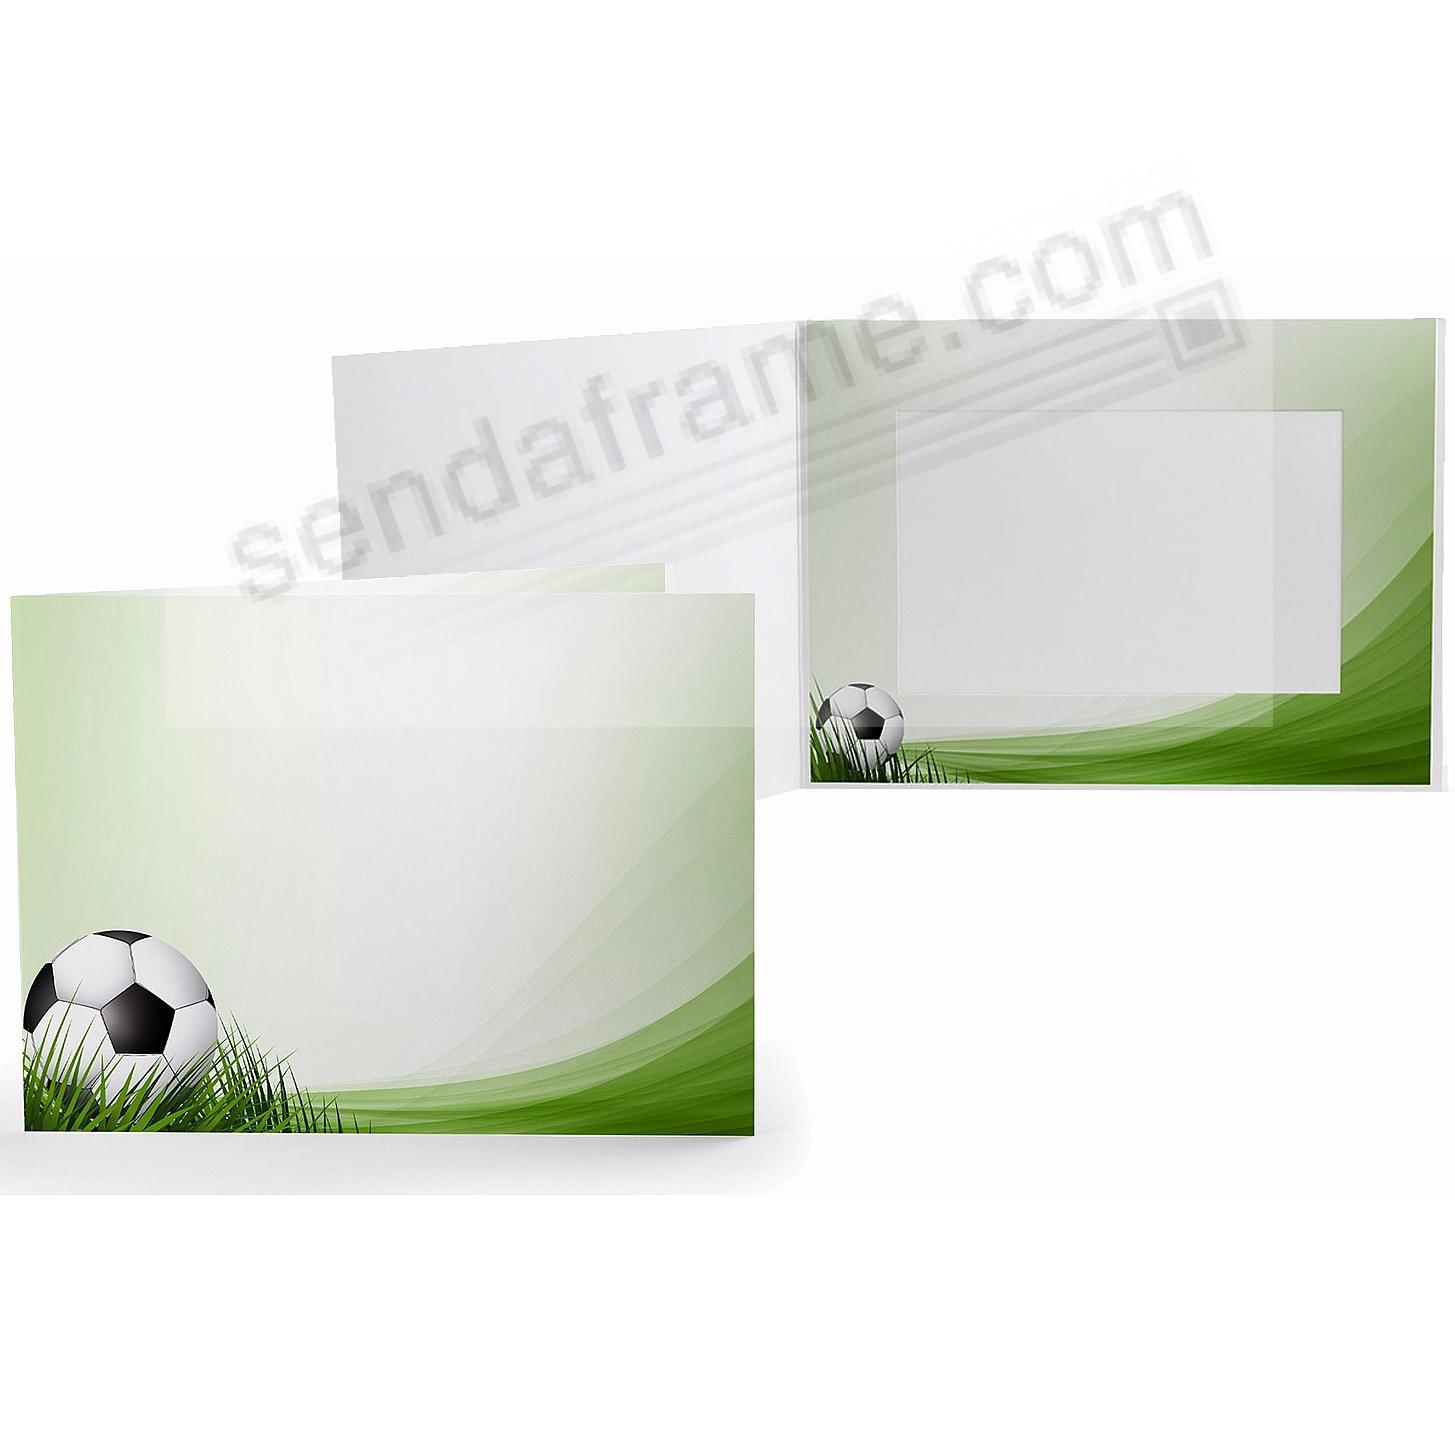 SOCCER FIELD Cardboard Photo Folder for 7x5 prints